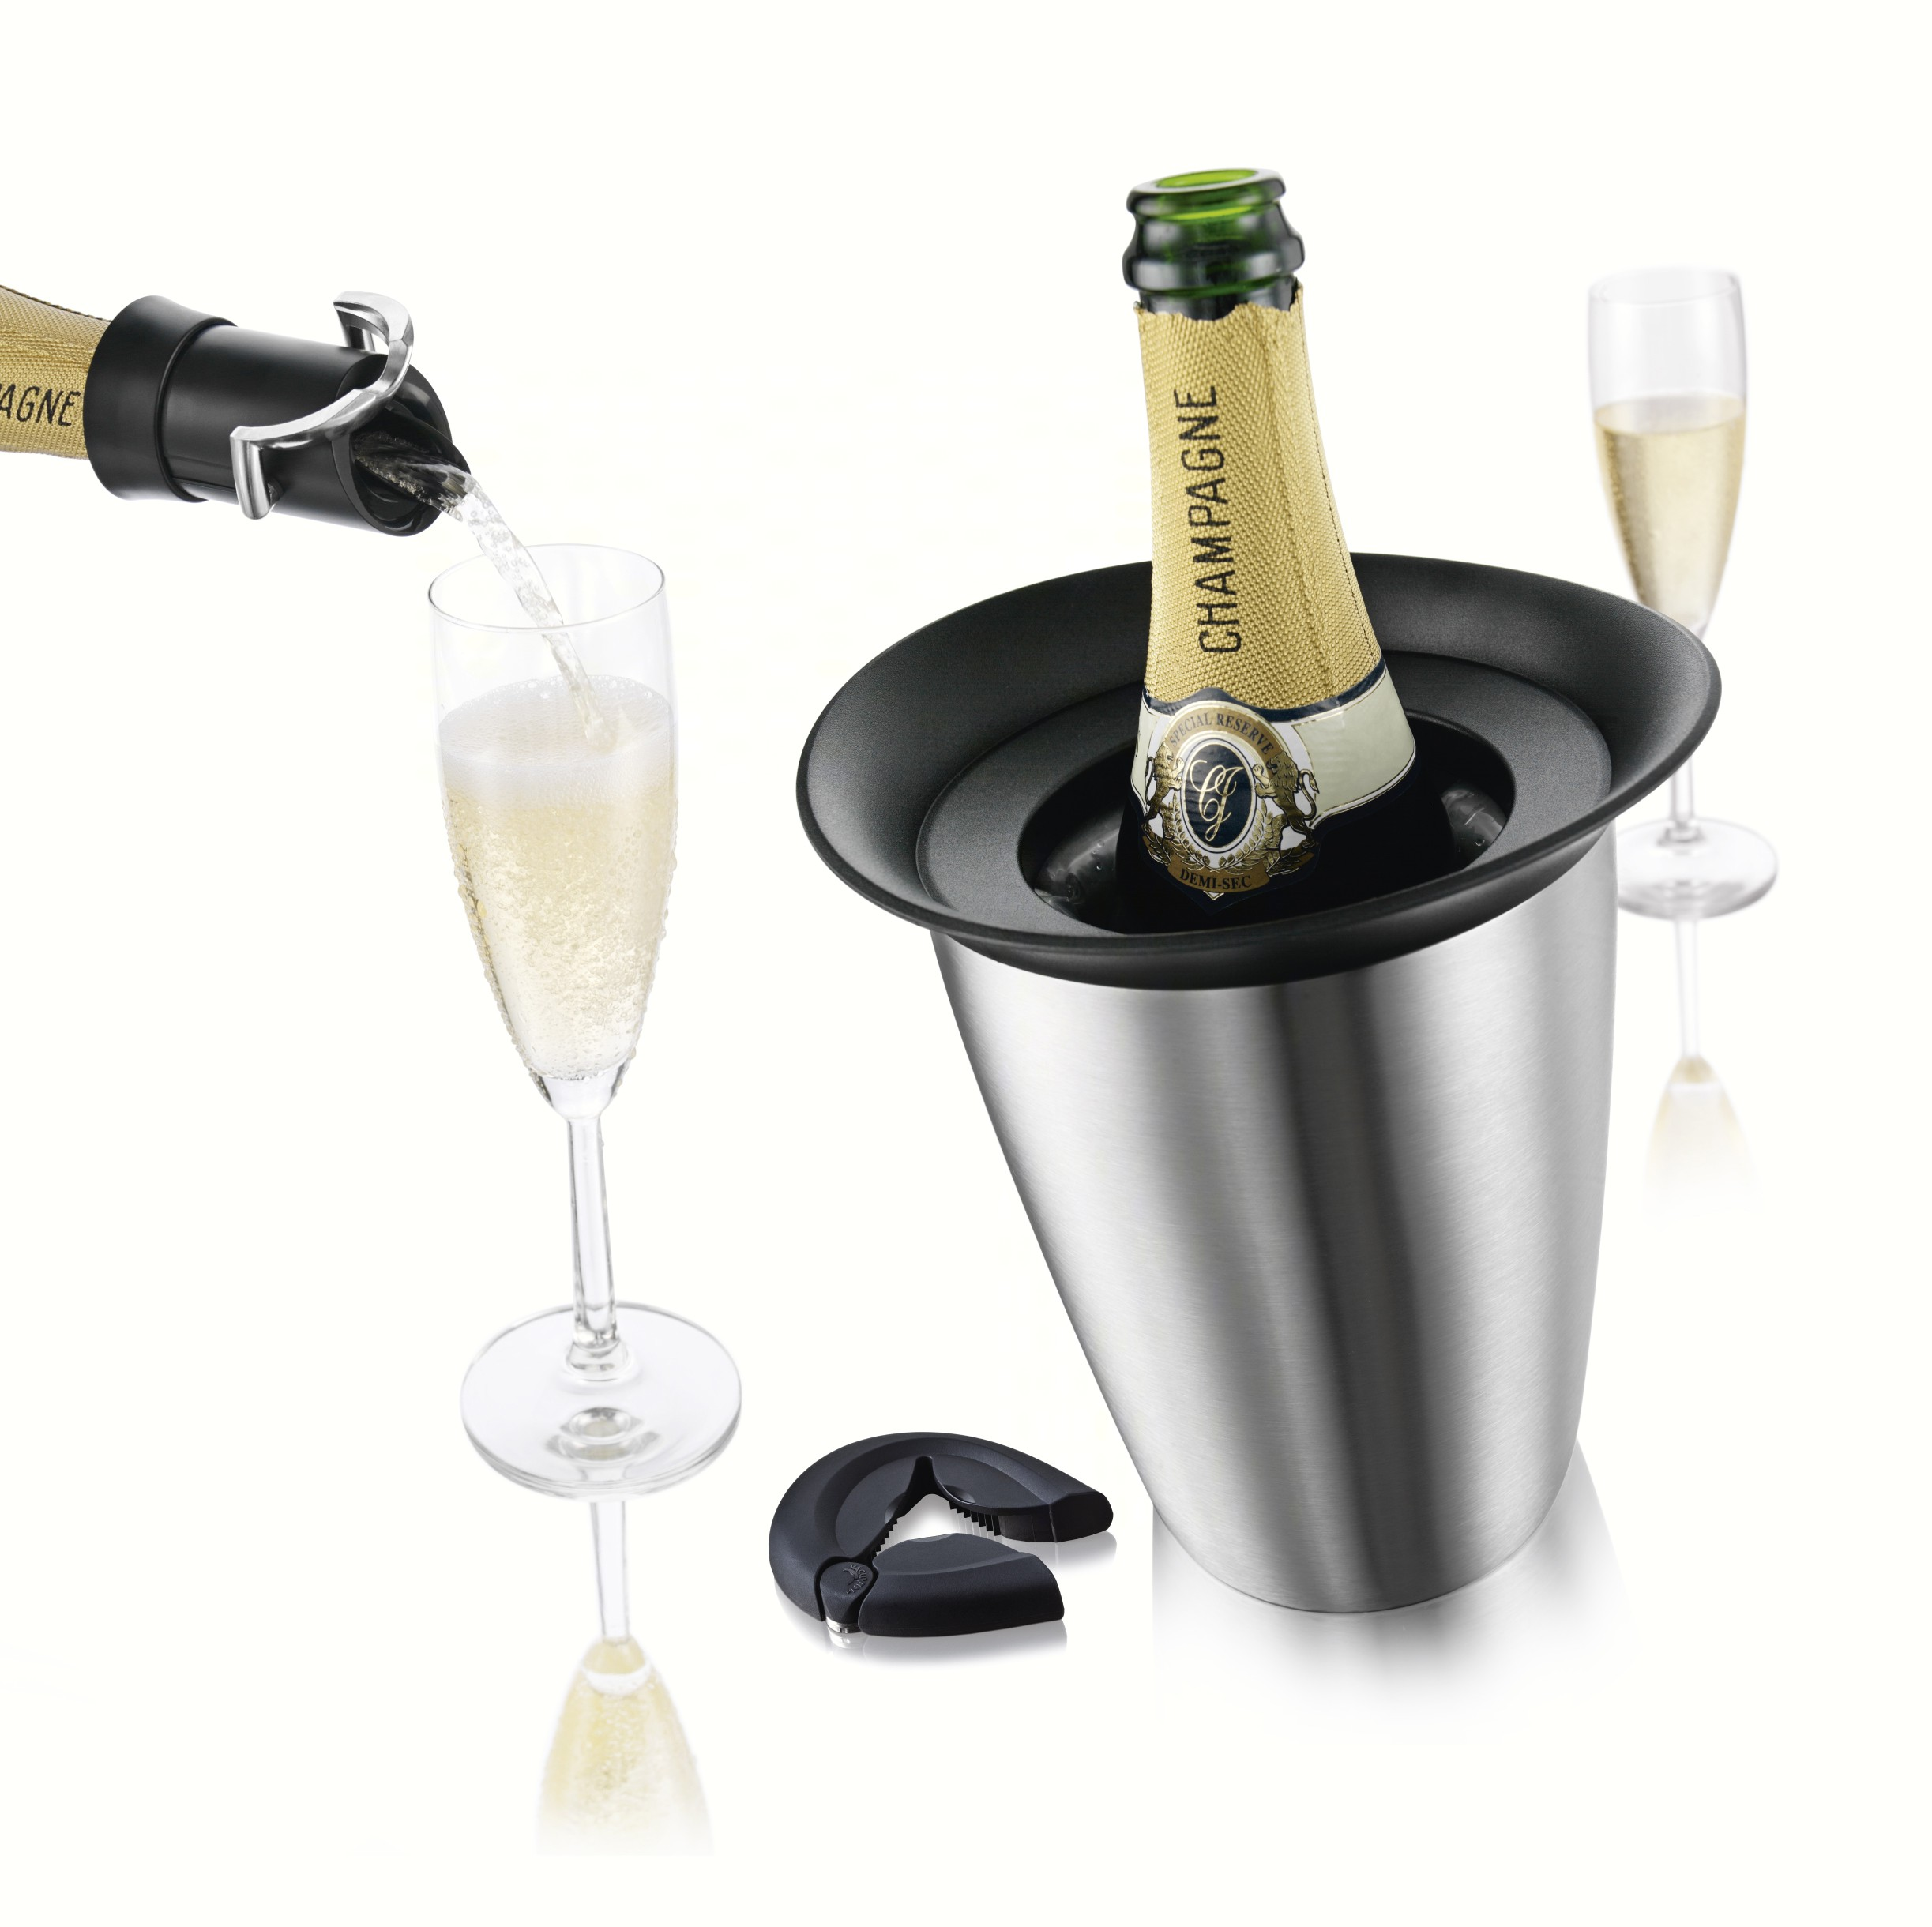 3 Piece Champagne Set (Active Champagne Cooler in Stainless Steel, Bottle Opener, Champagne Saver)